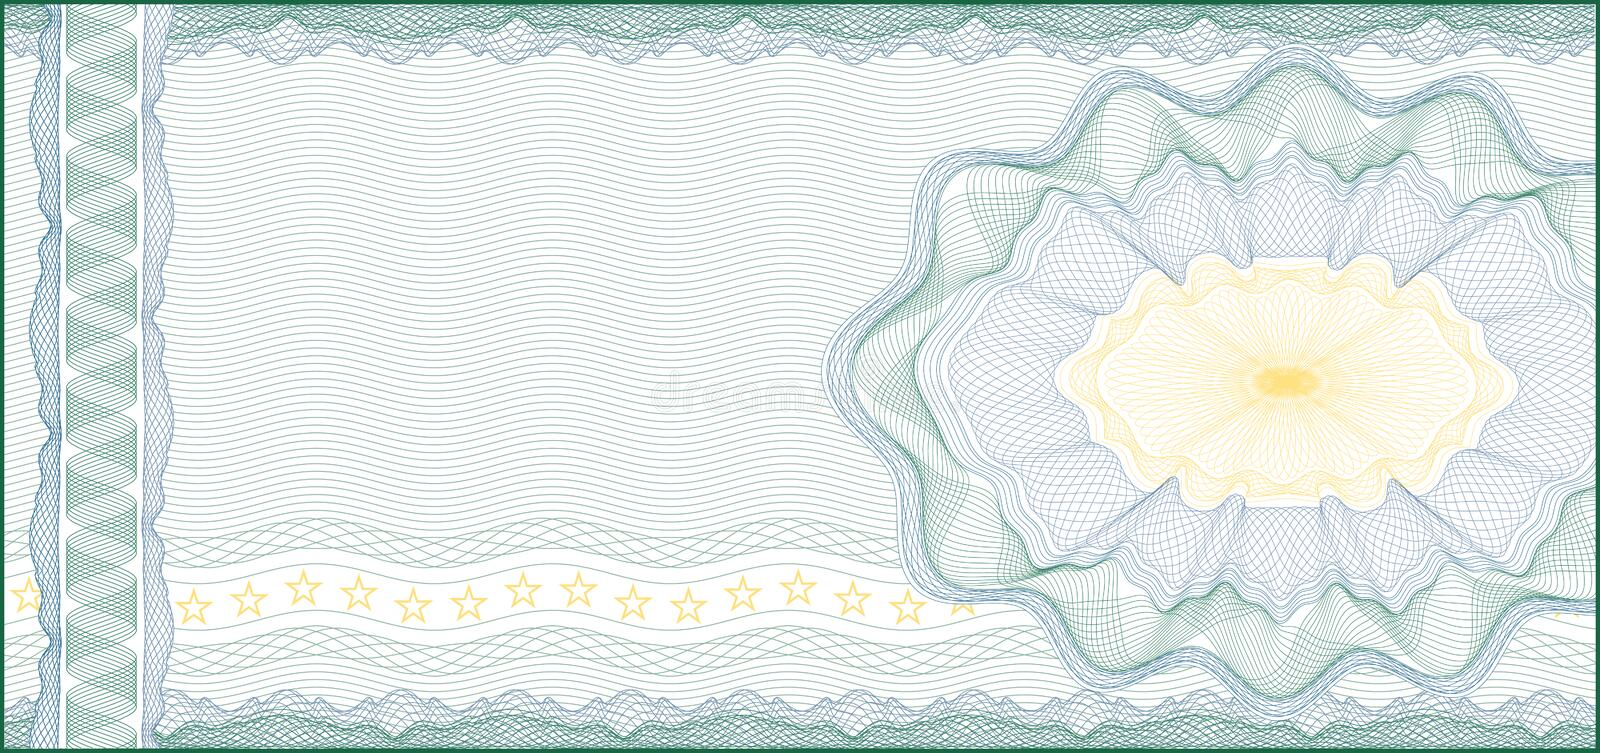 For Voucher, Gift Certificate, Coupon or Banknote. Guilloche Background for Voucher, Gift Certificate, Coupon or Banknote / layers are included for easy editing